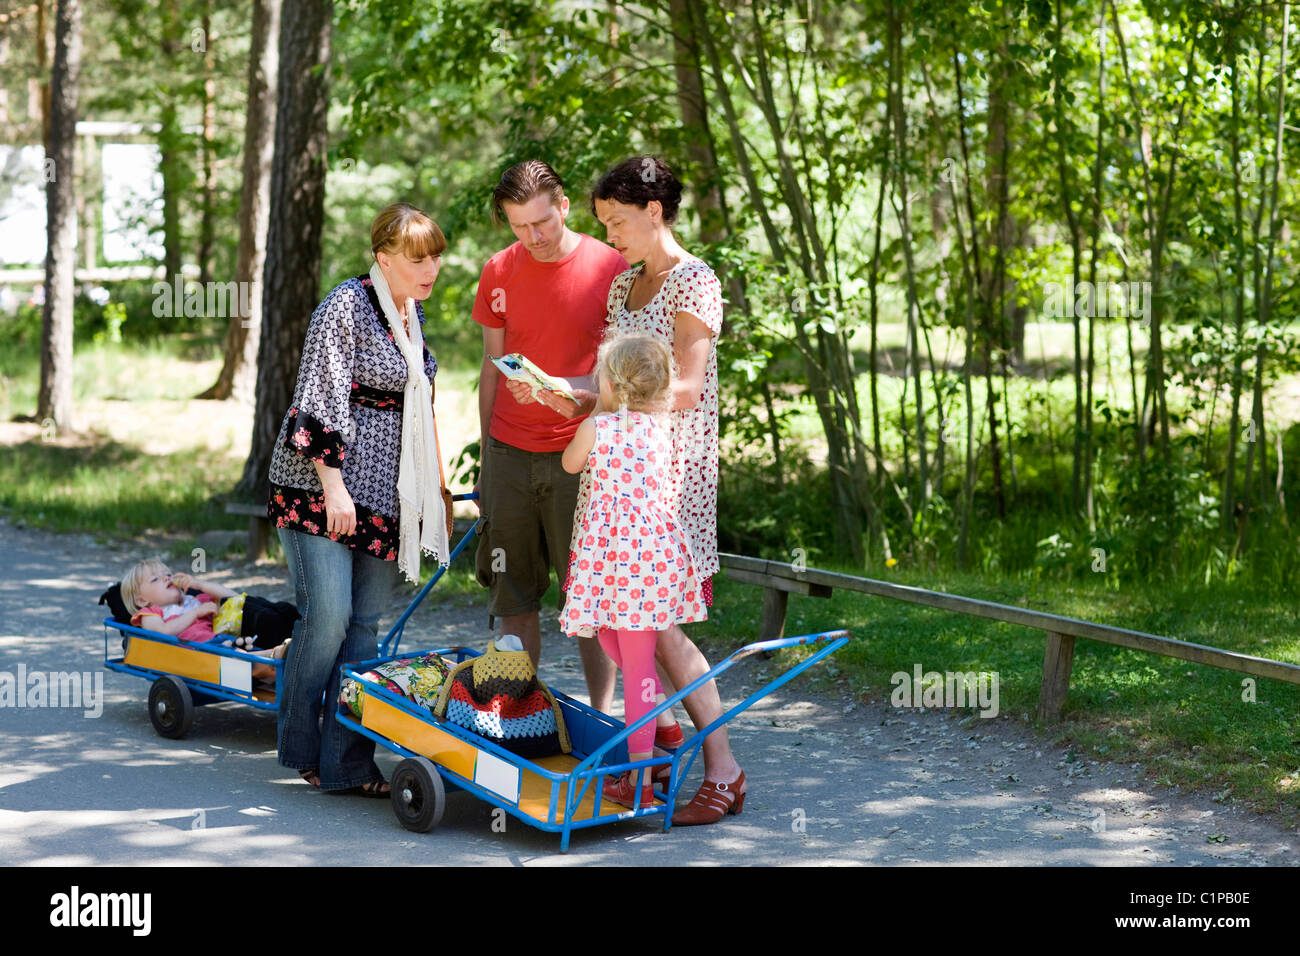 Parents with children viewing map at zoo - Stock Image